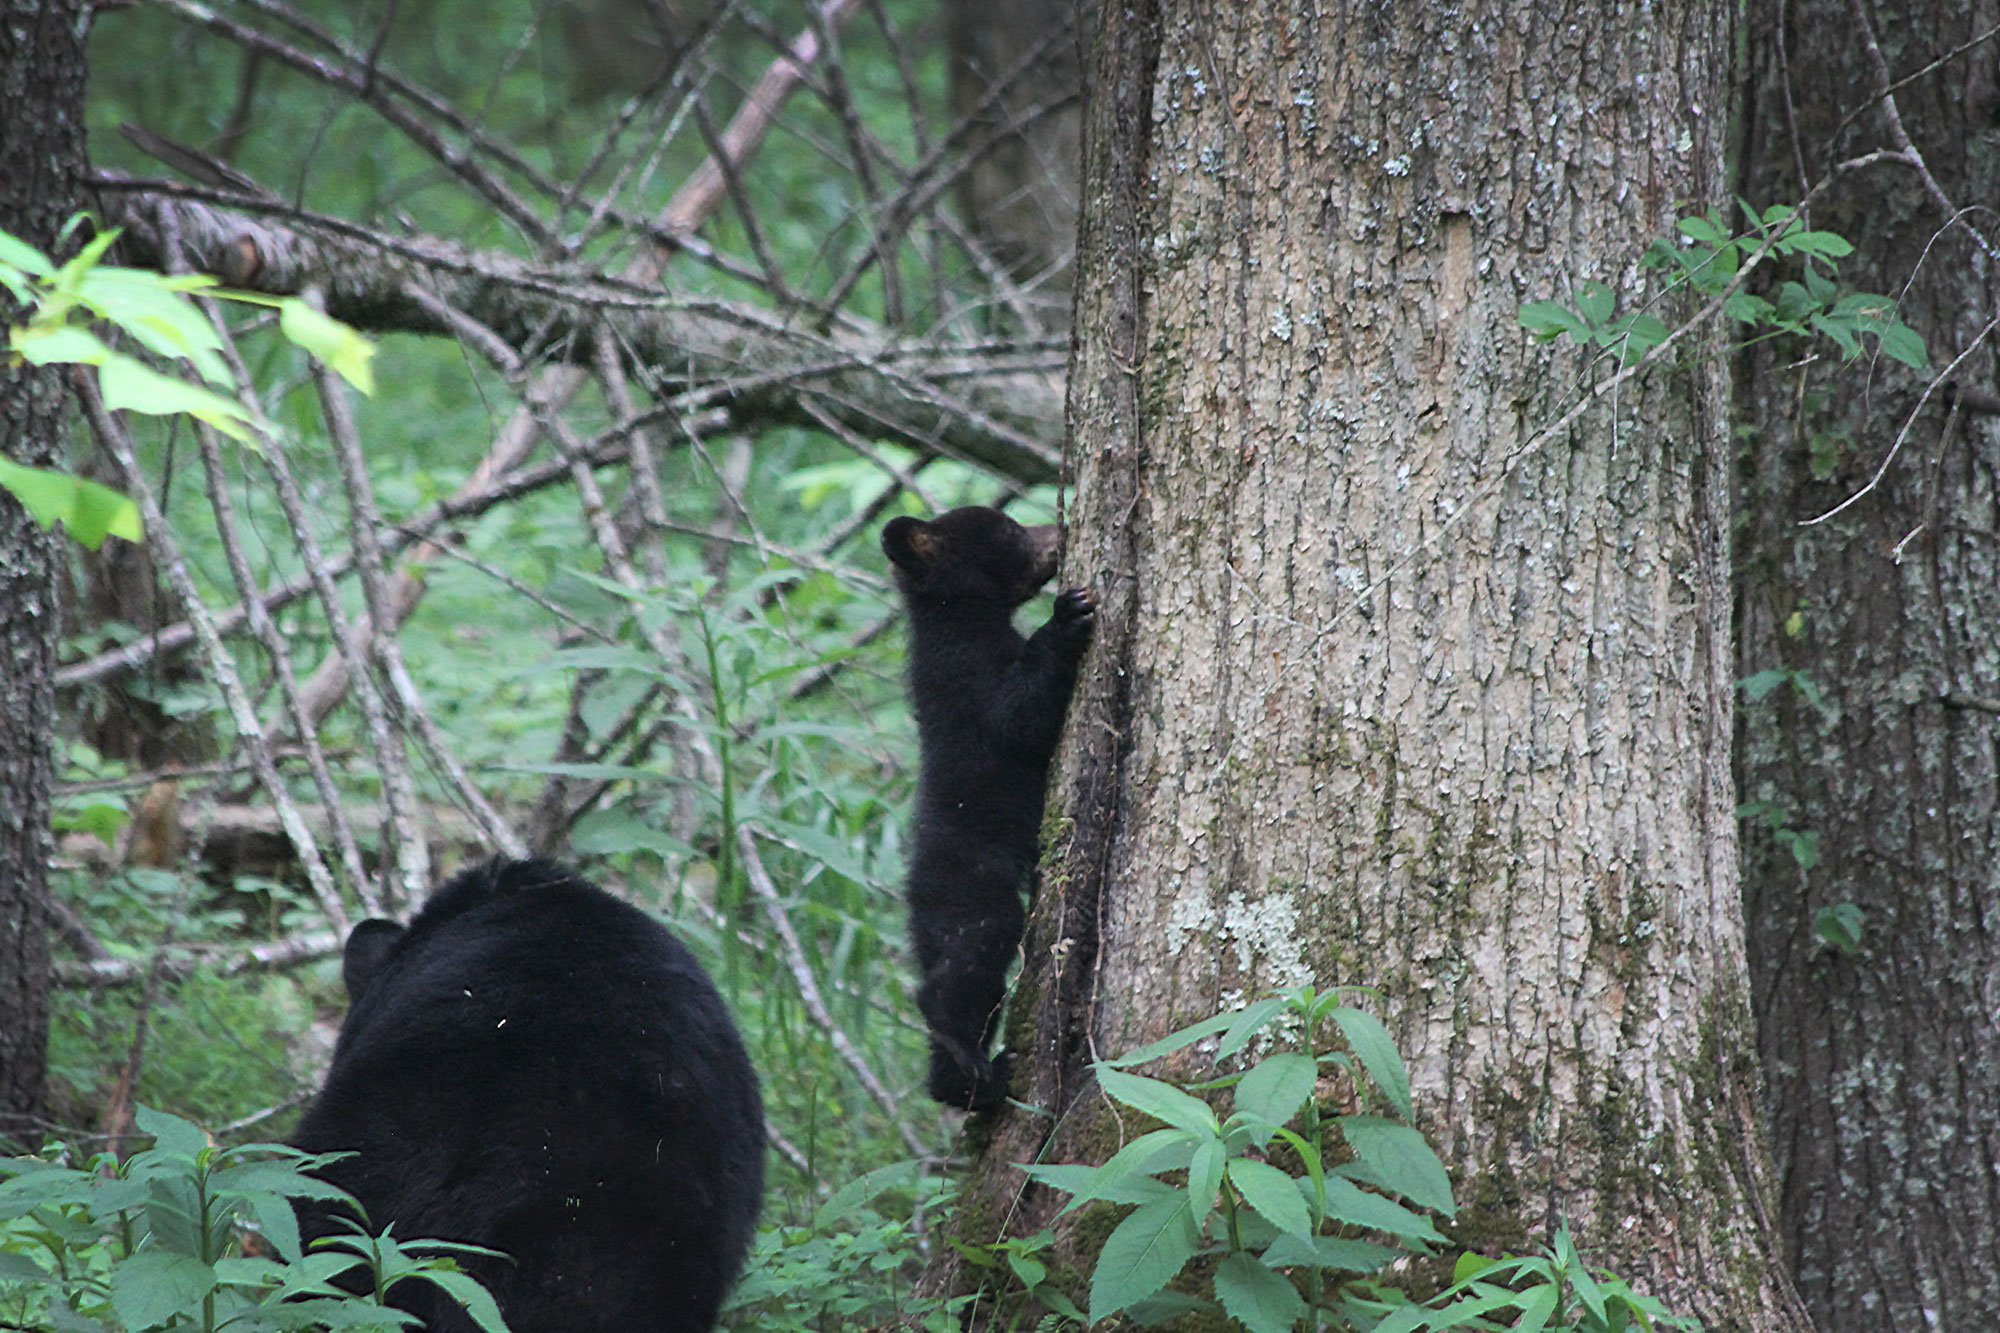 Black mother cub with baby cub climbing a tree in Cades Cove, Great Smoky Mountains National Park, Tennessee